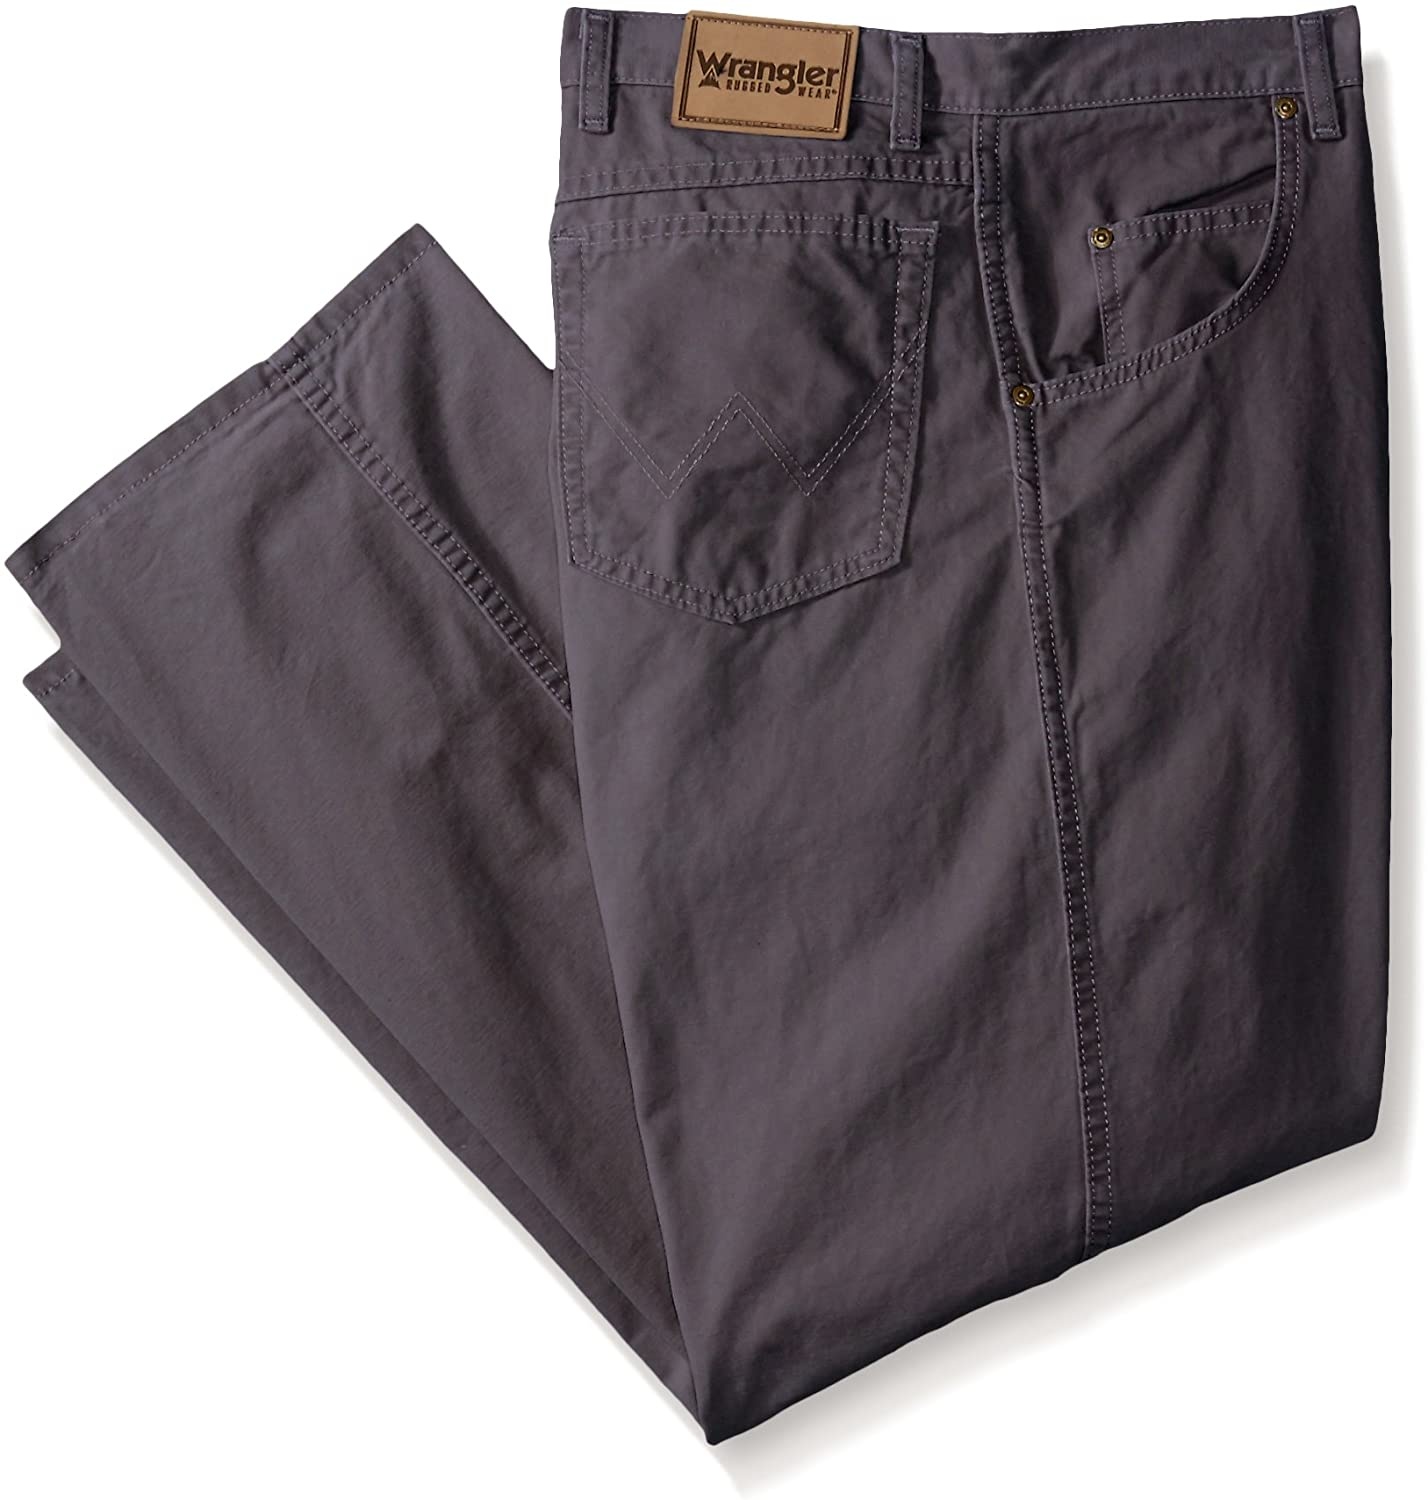 Wrangler Men's Big Rugged Wear Relaxed Fit Straight Leg Pant